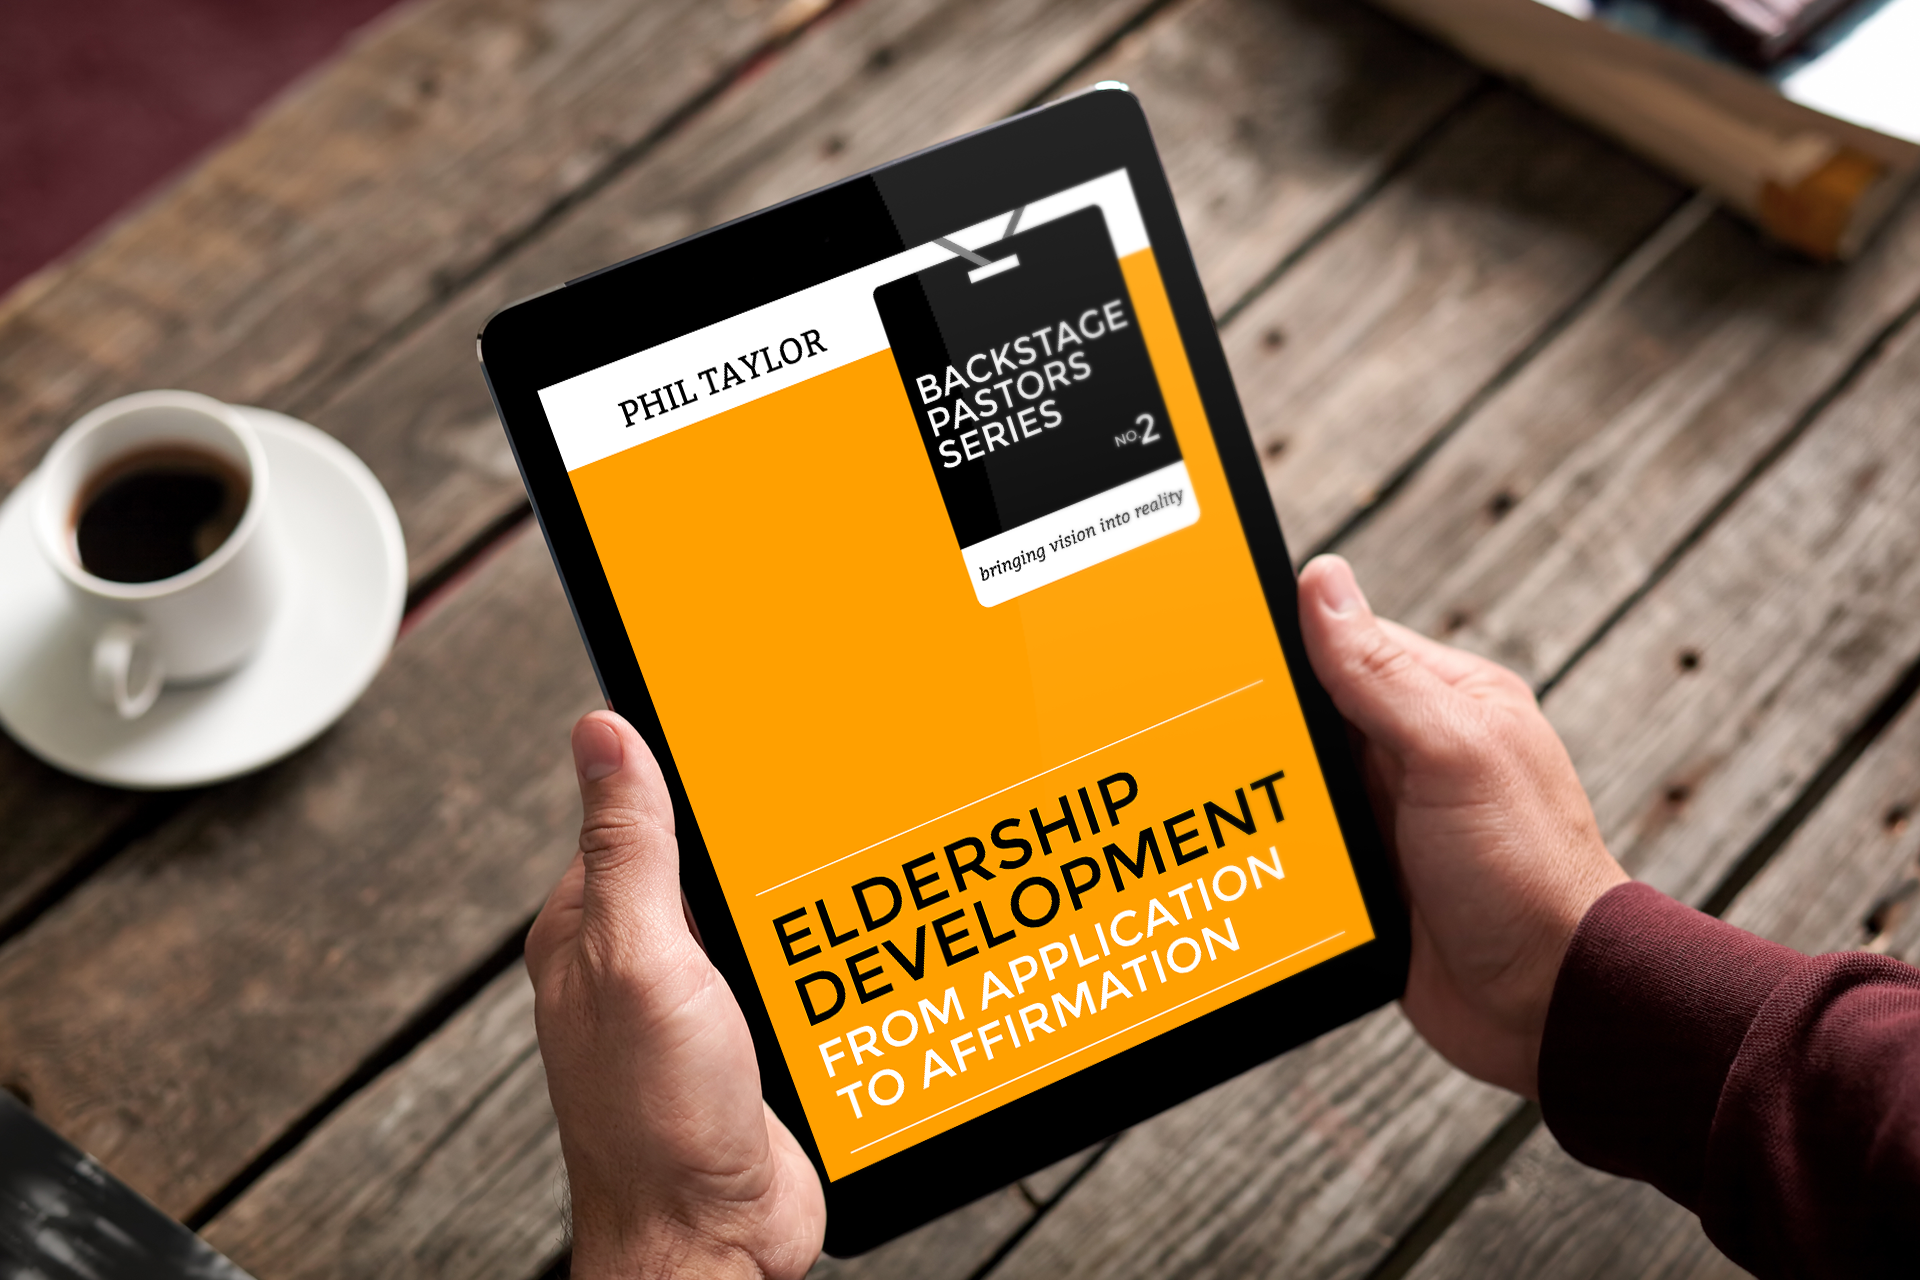 BOOK ON ELDERSHIP DEVELOPMENT